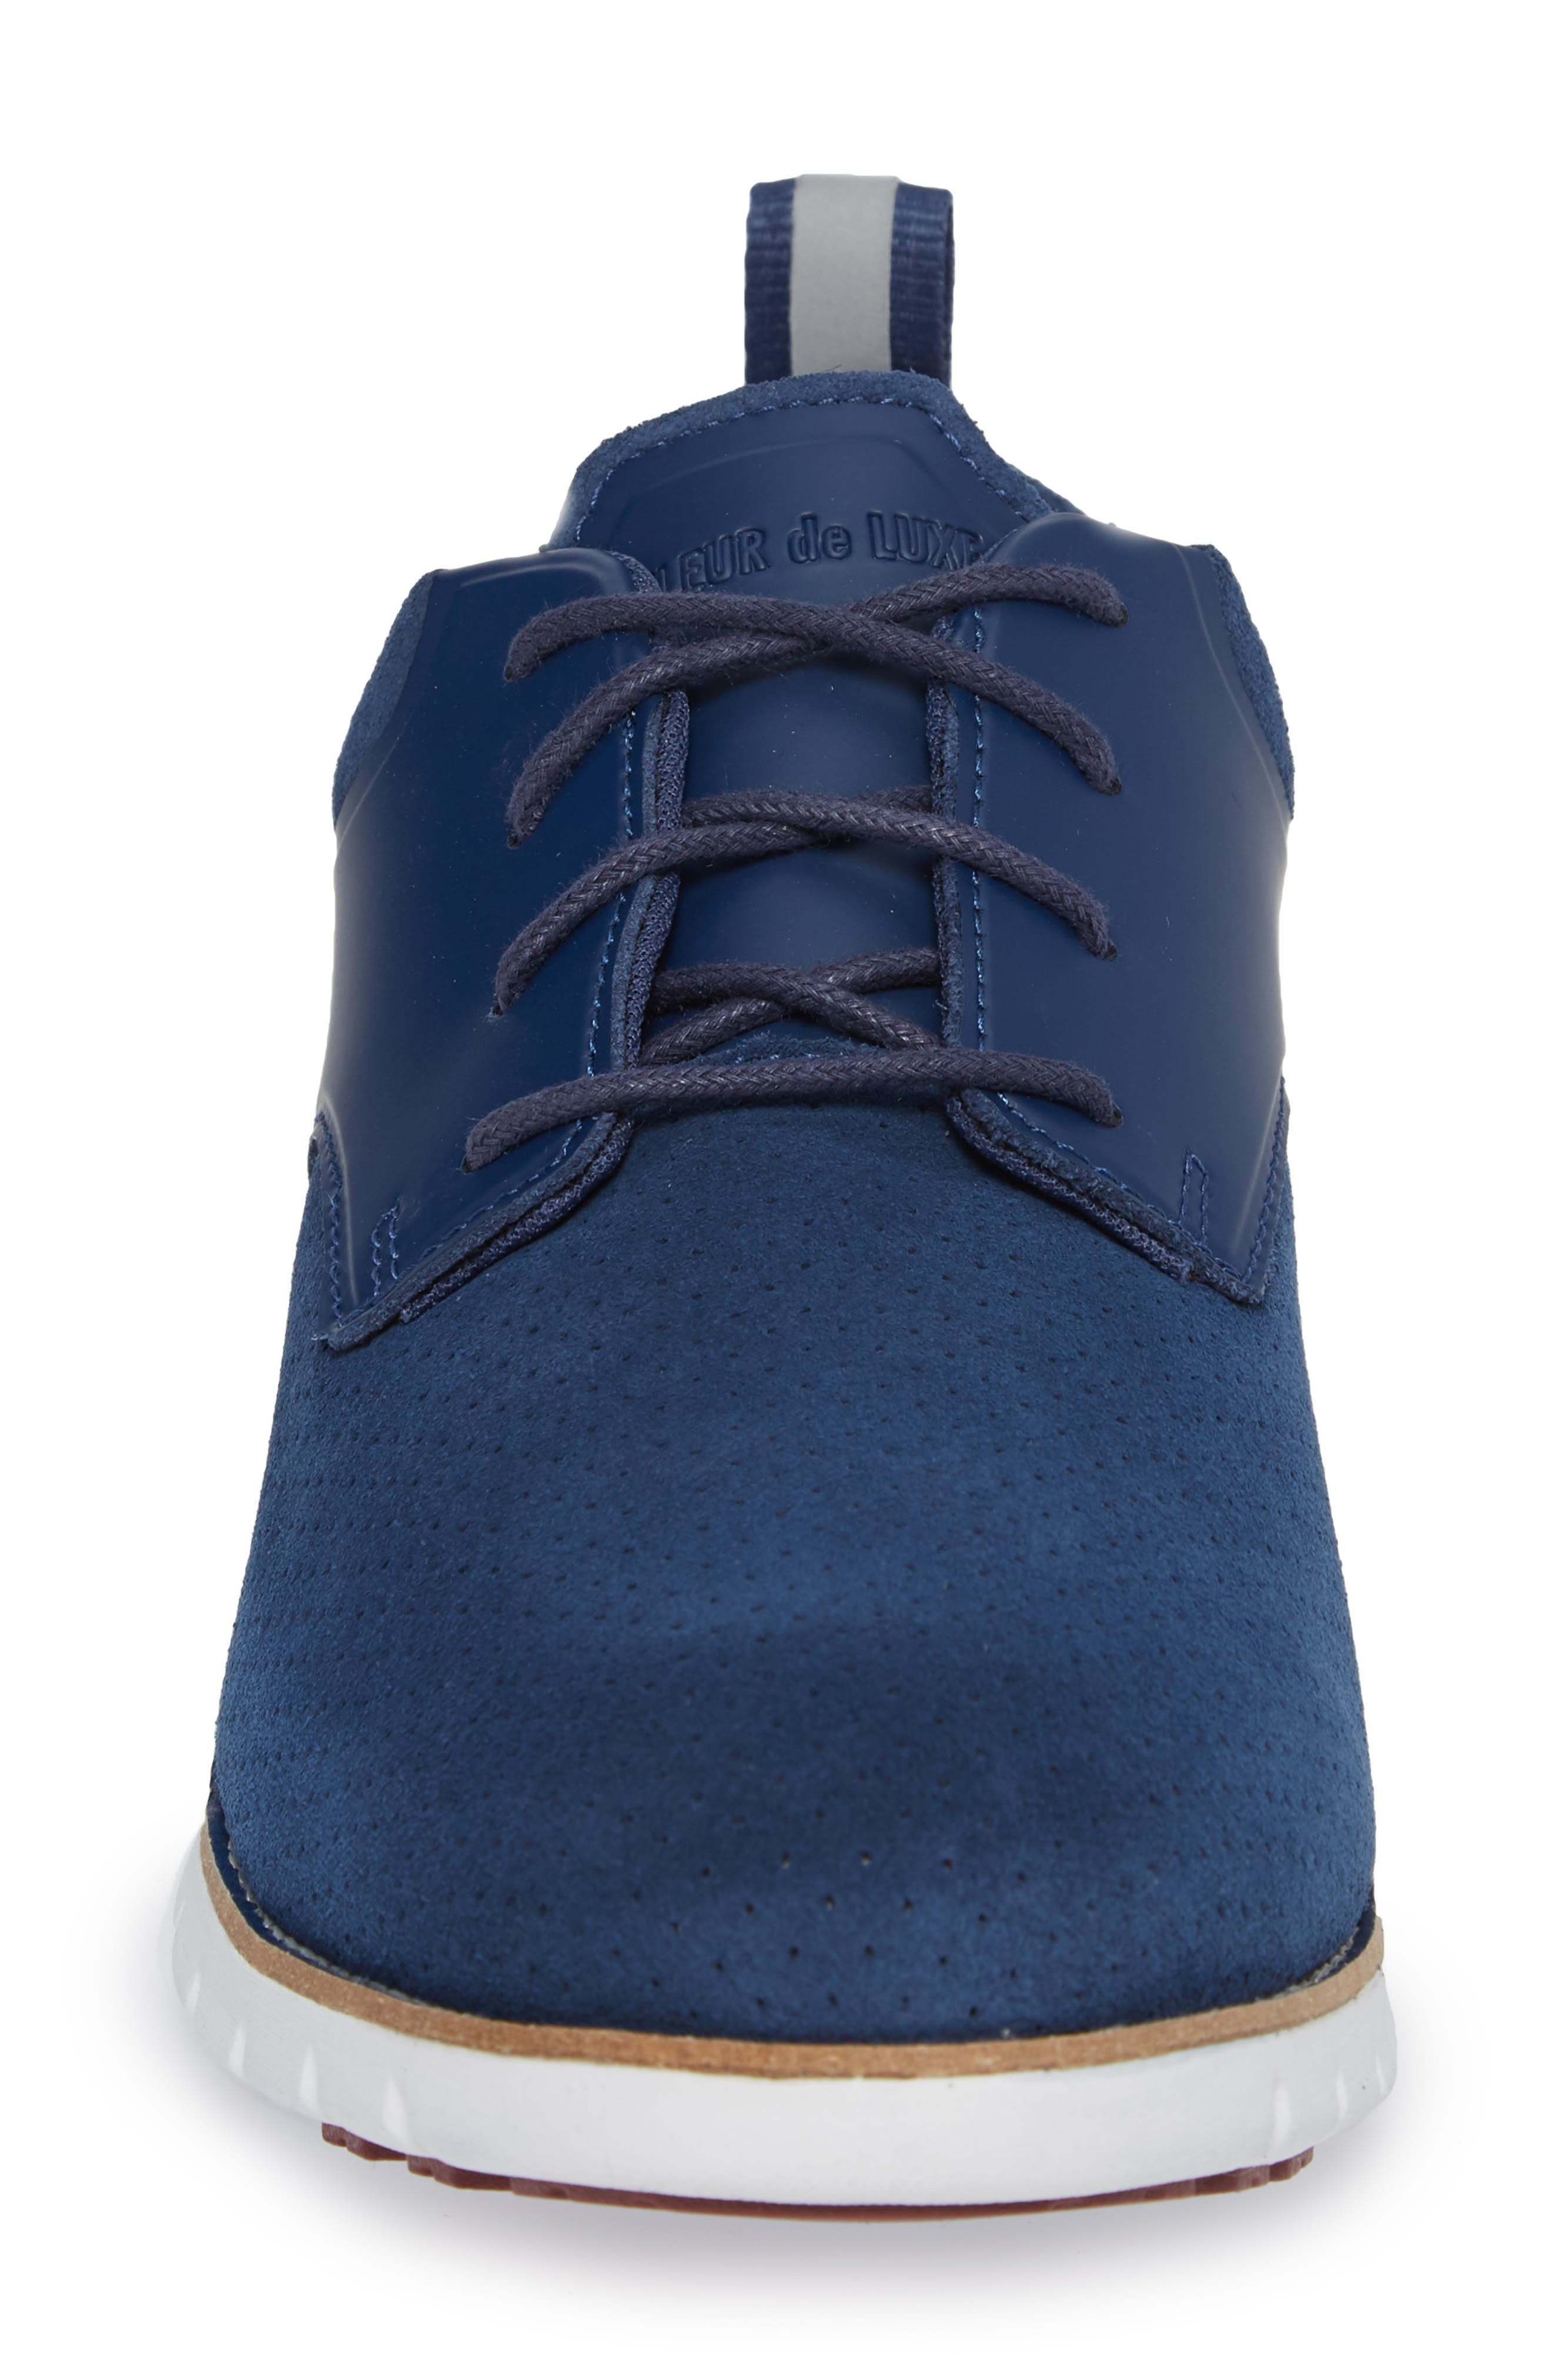 Ridley Perforated Low Top Sneaker,                             Alternate thumbnail 4, color,                             NAVY LEATHER